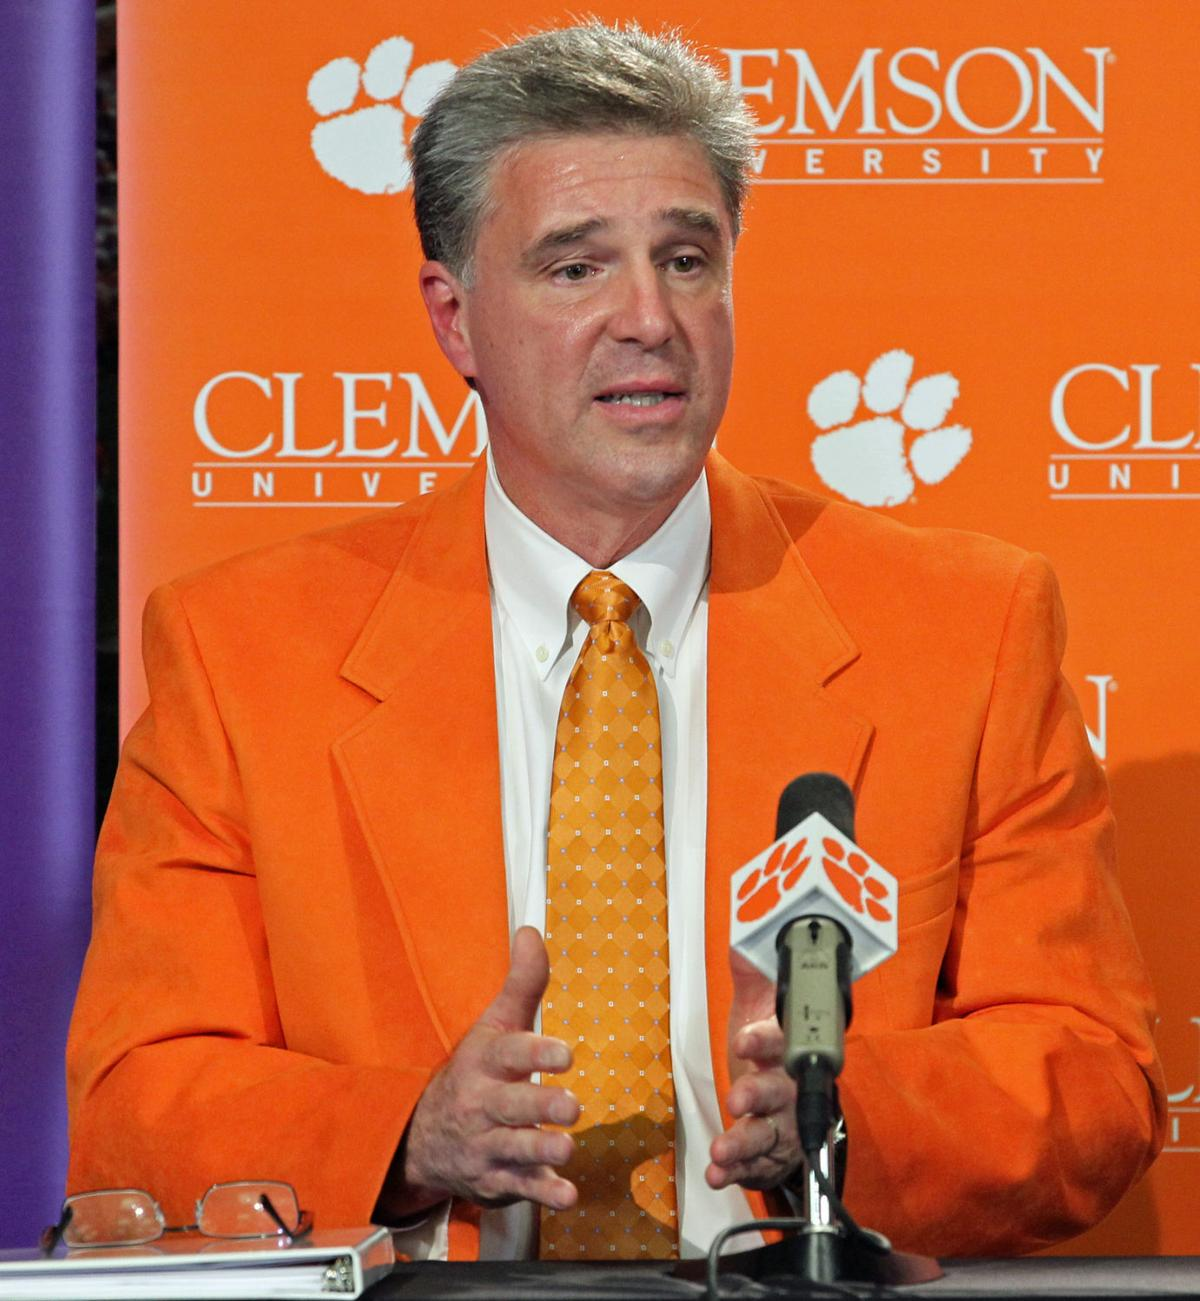 Clemson's Will: Good idea, but not enough (copy)